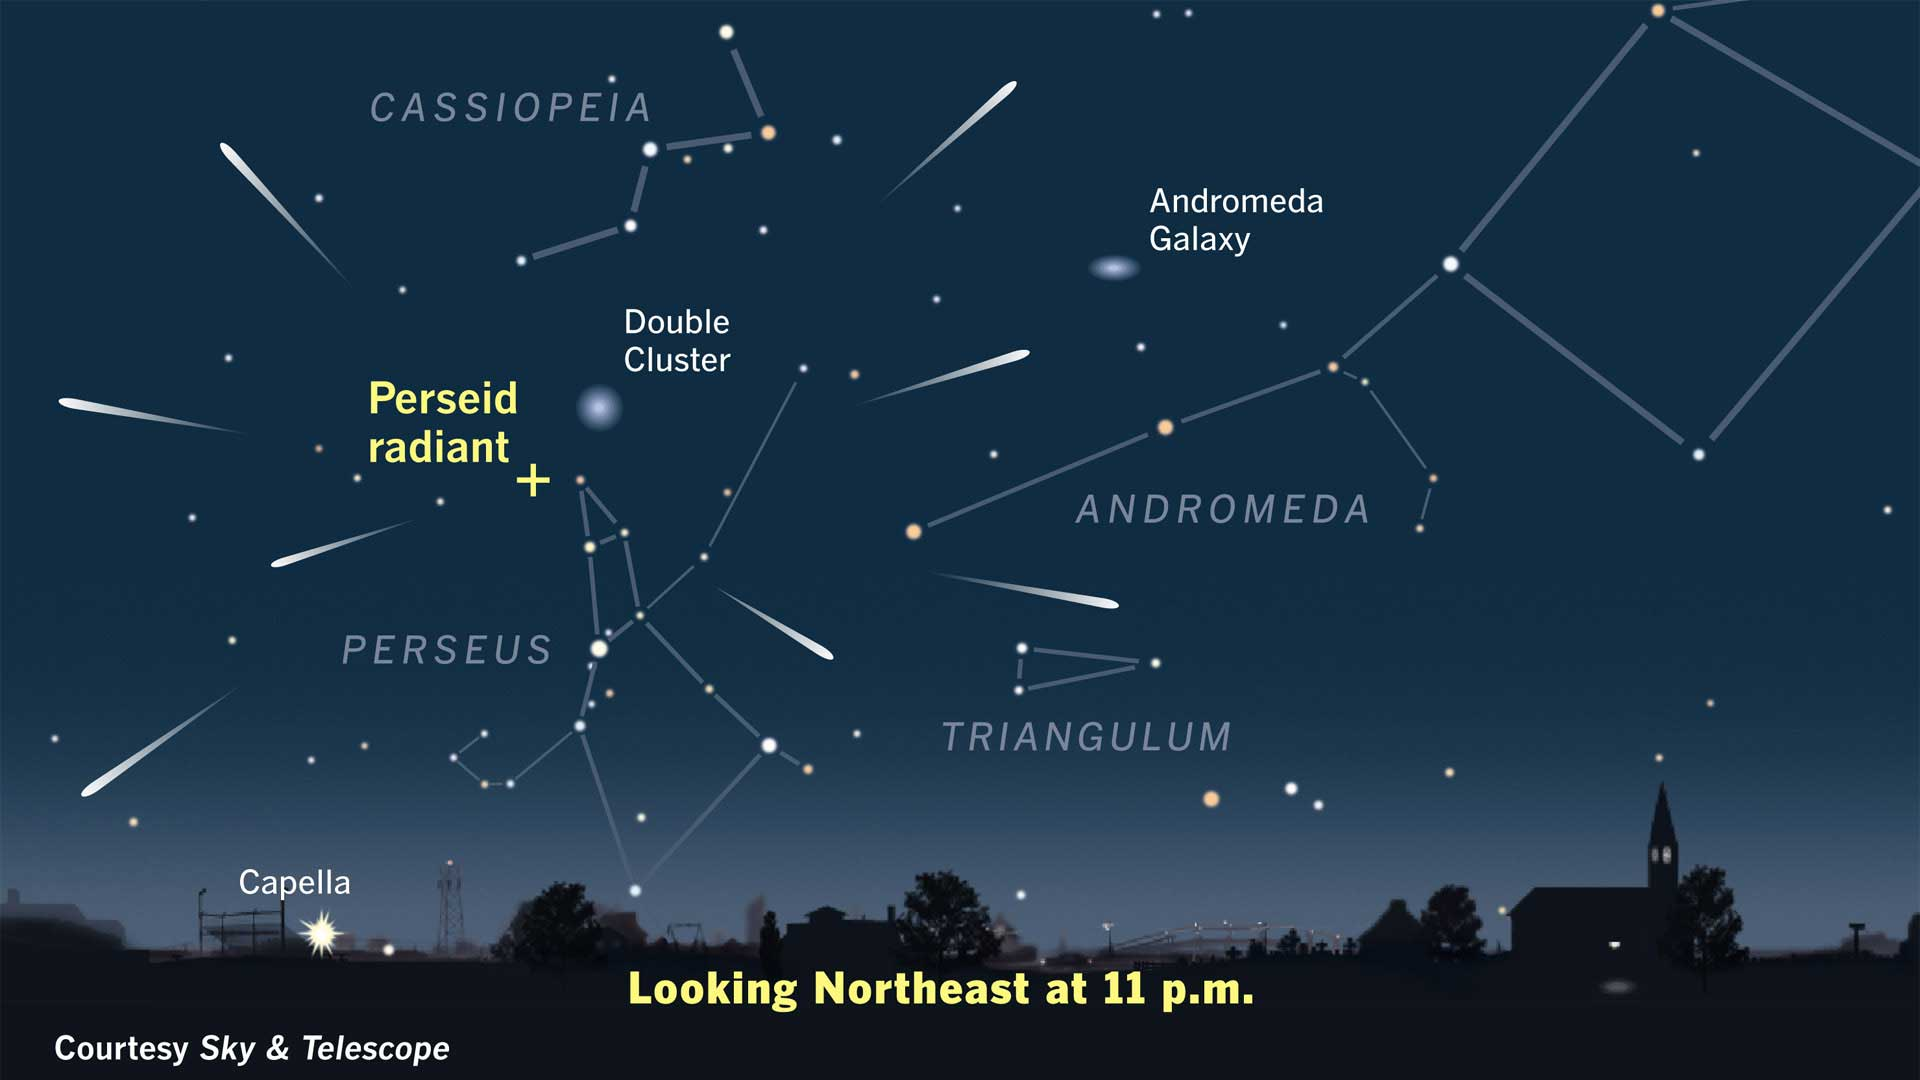 The 2018 Perseid meteor shower peaks overnight on Aug. 12-13, 2018. This sky map shows where to look at 11 p.m. local time this weekend. (Image credit: Sky & Telescope Magazine)